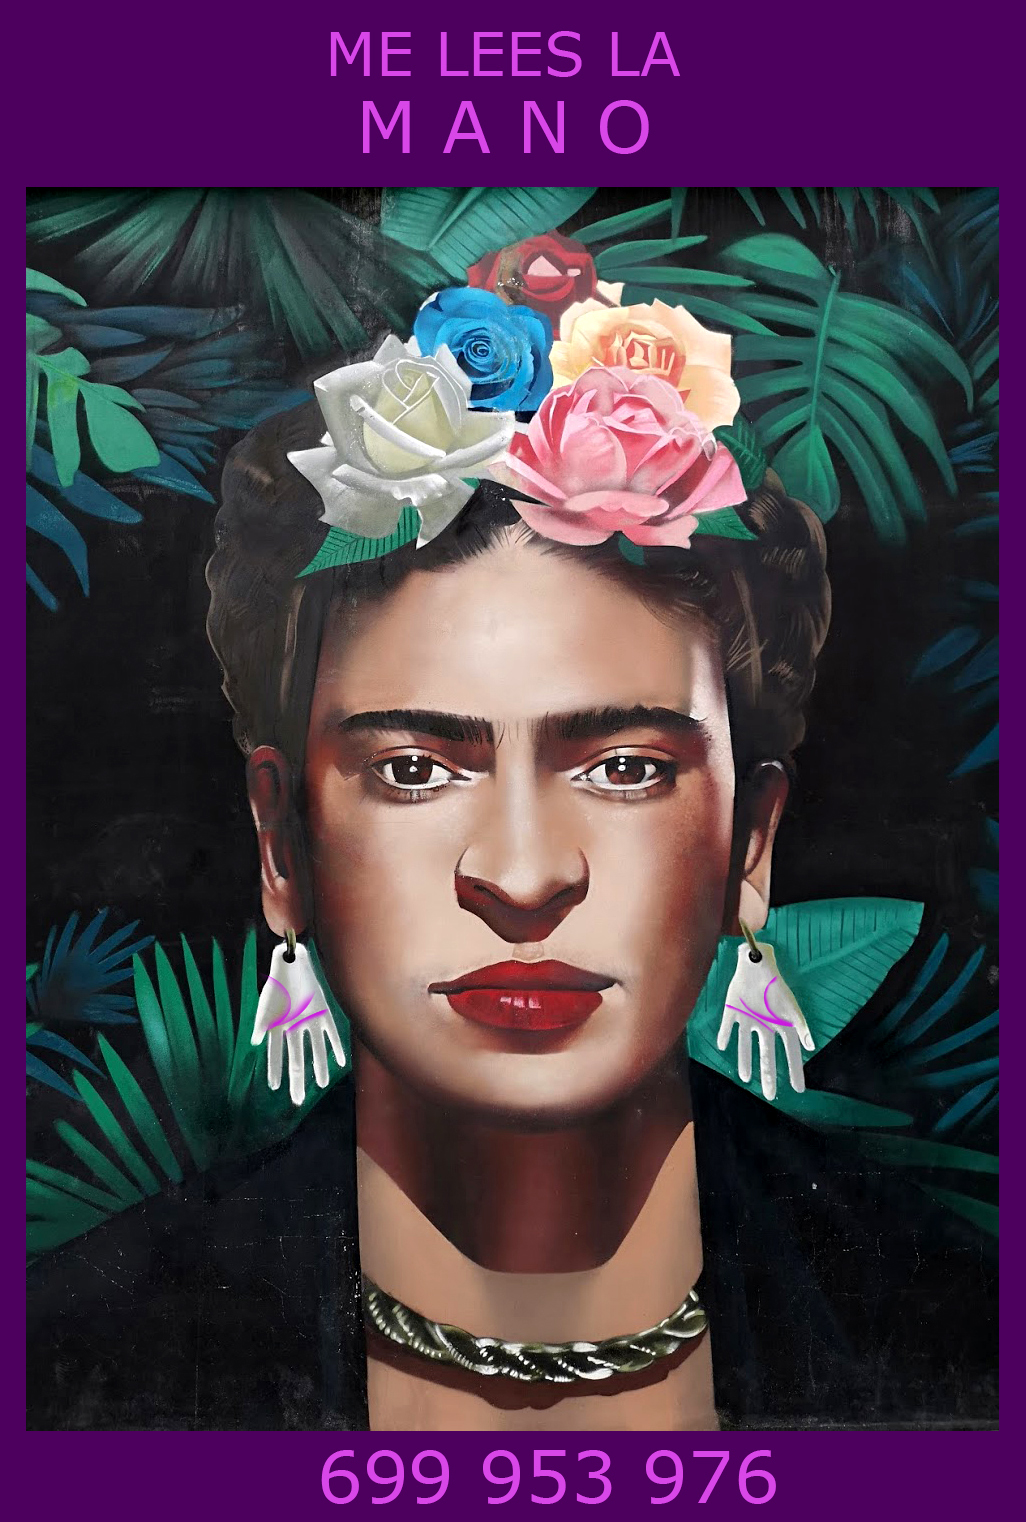 FRIDA-MANOS copy